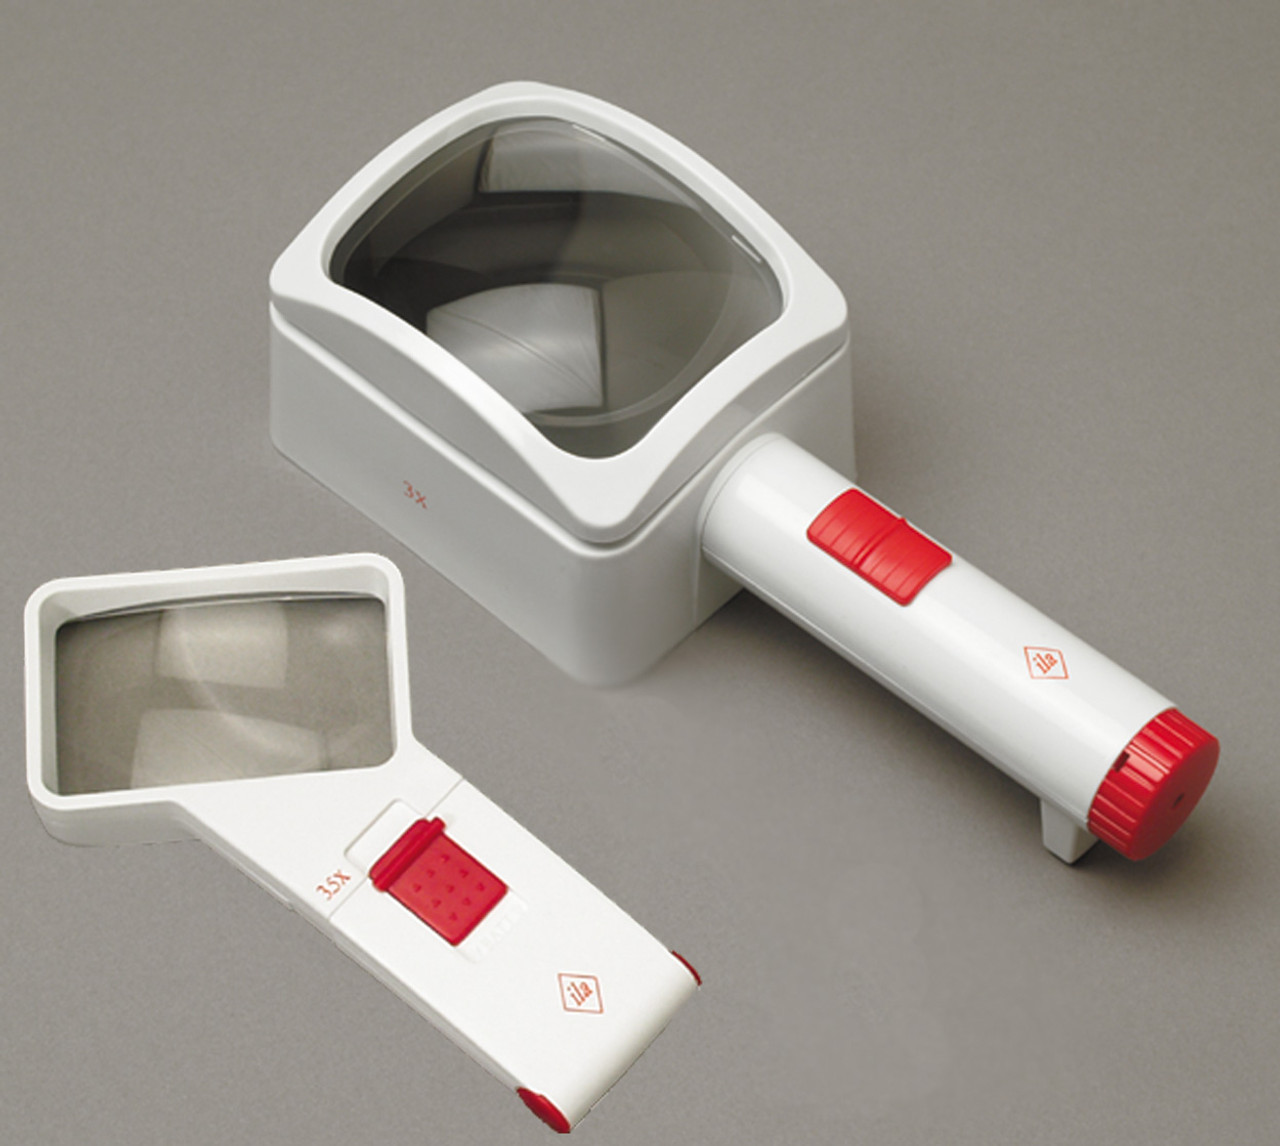 3X ila Stand & 3.5X Hand Held LED Magnifiers